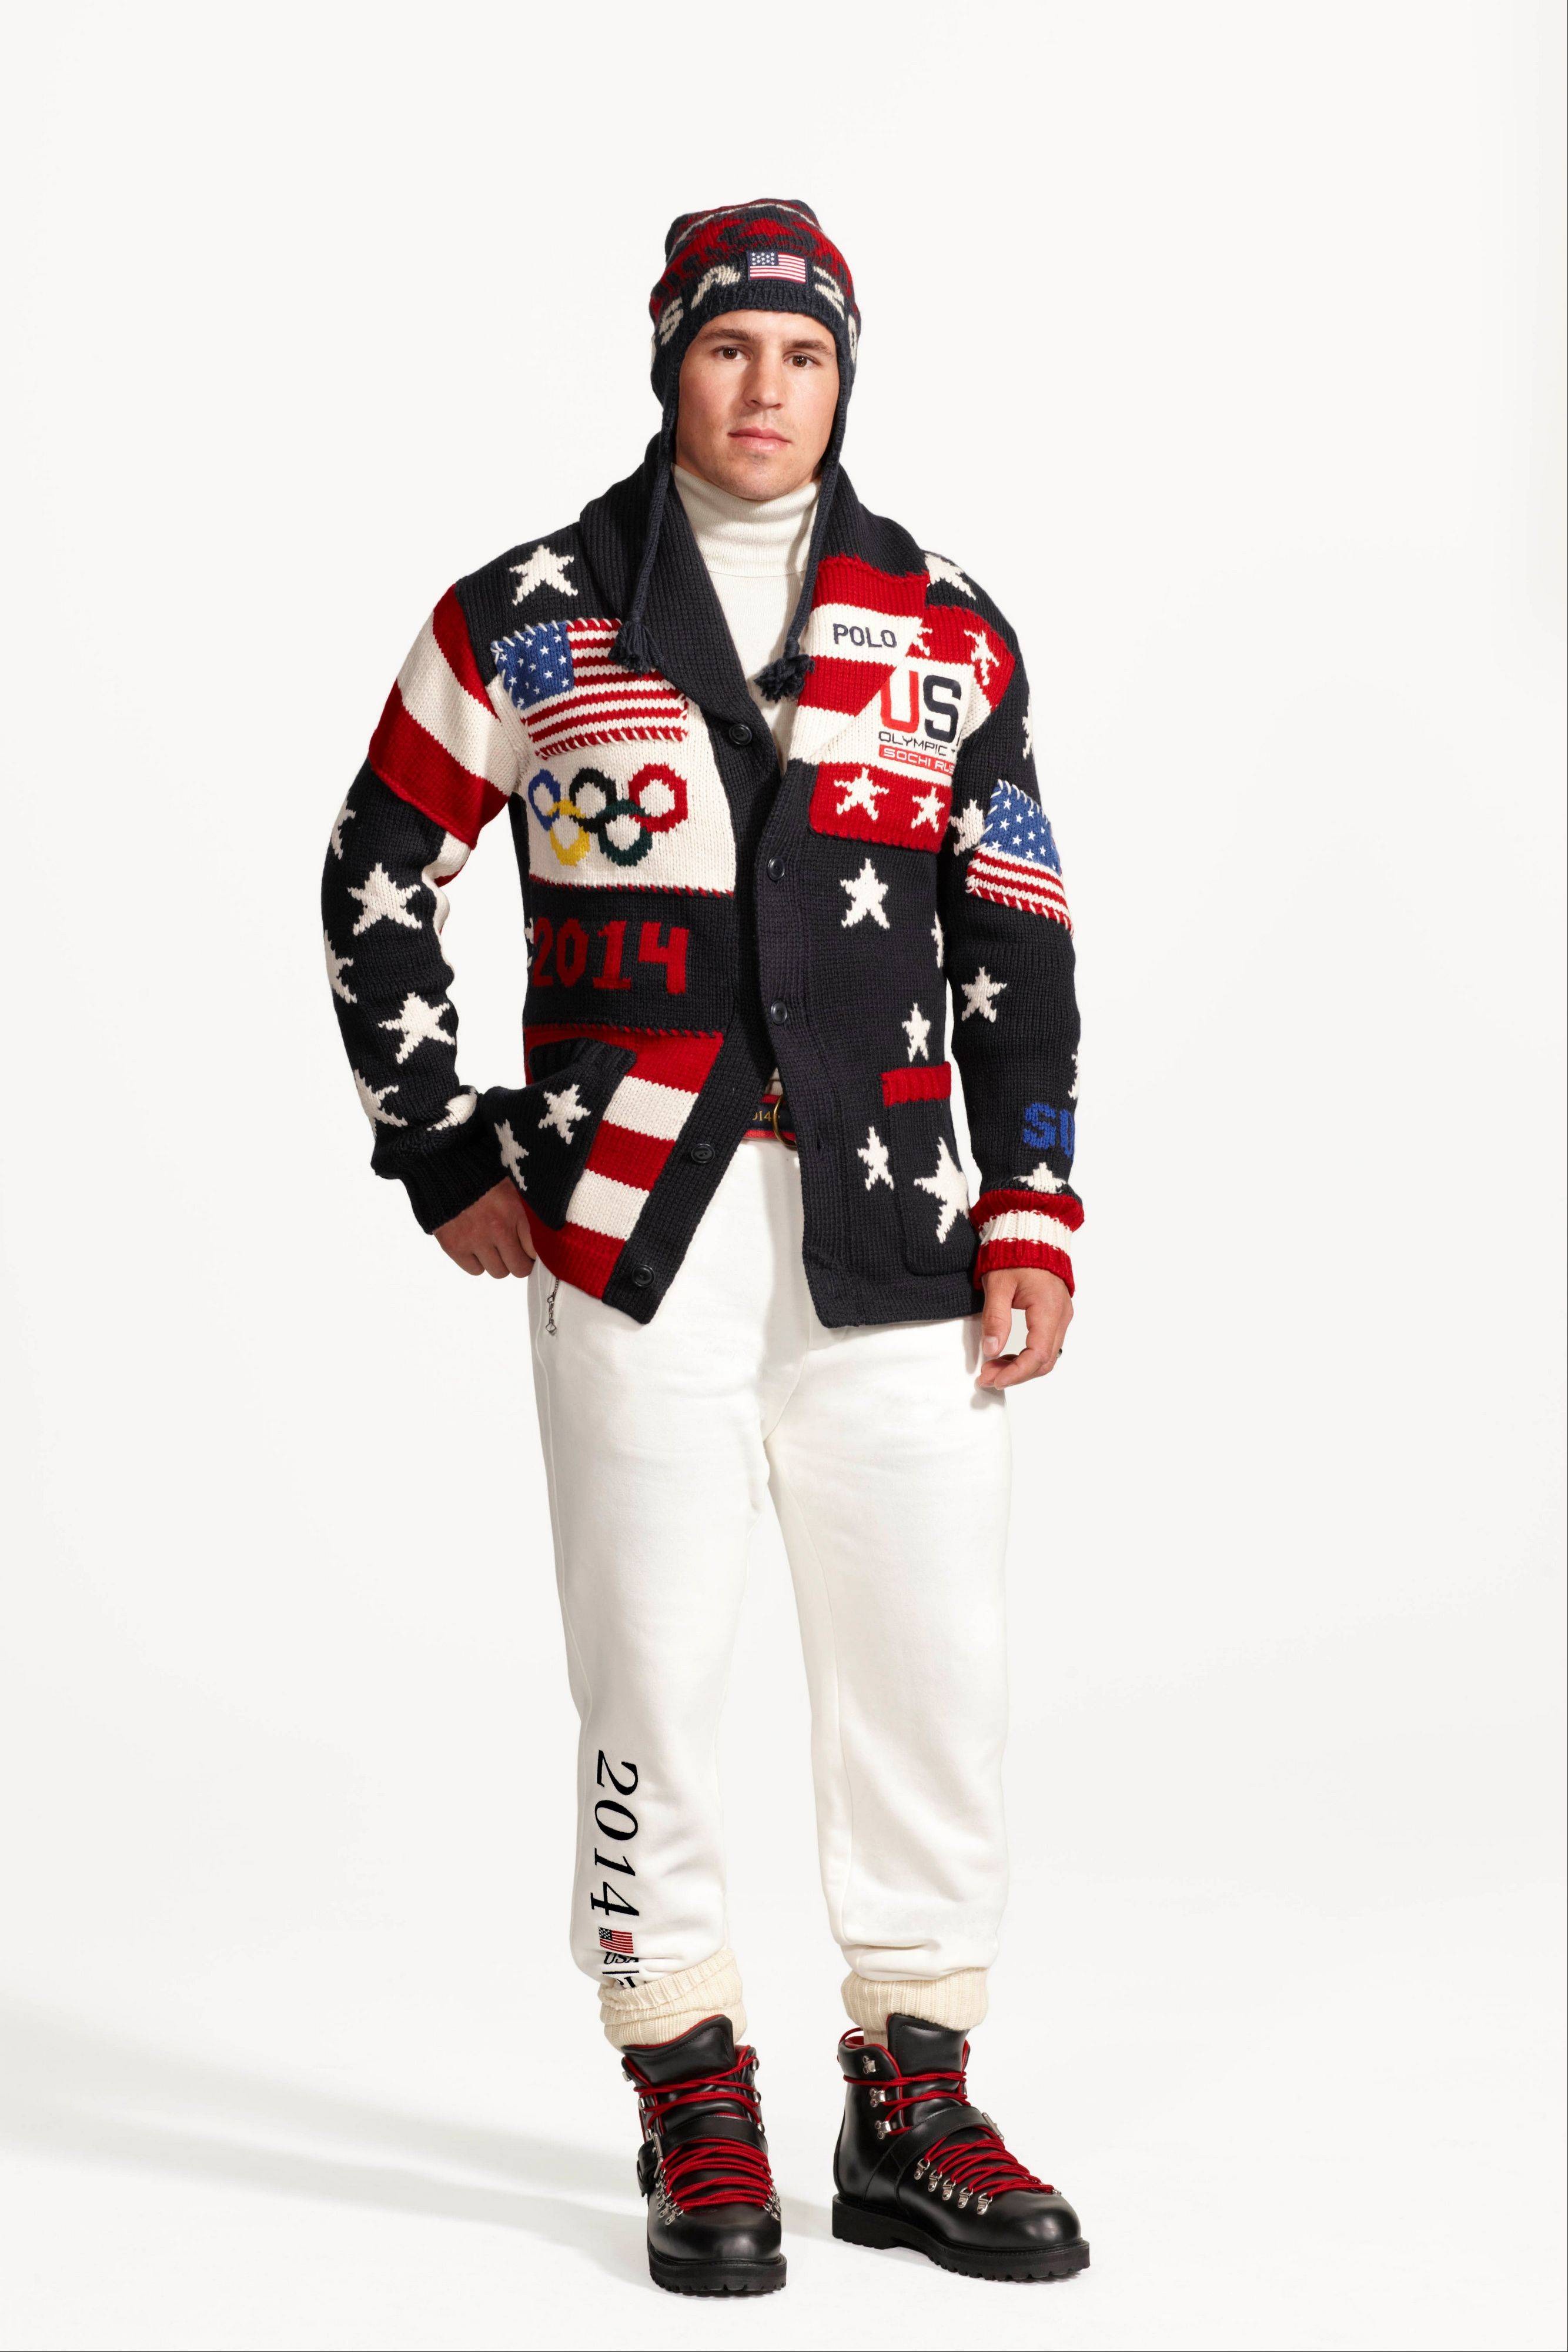 This product image released by Ralph Lauren shows American hockey player Zach Parise wearing the official uniform for Team USA to be worn at the opening ceremony for the 2014 Winter Olympic games in Sochi, Russia.